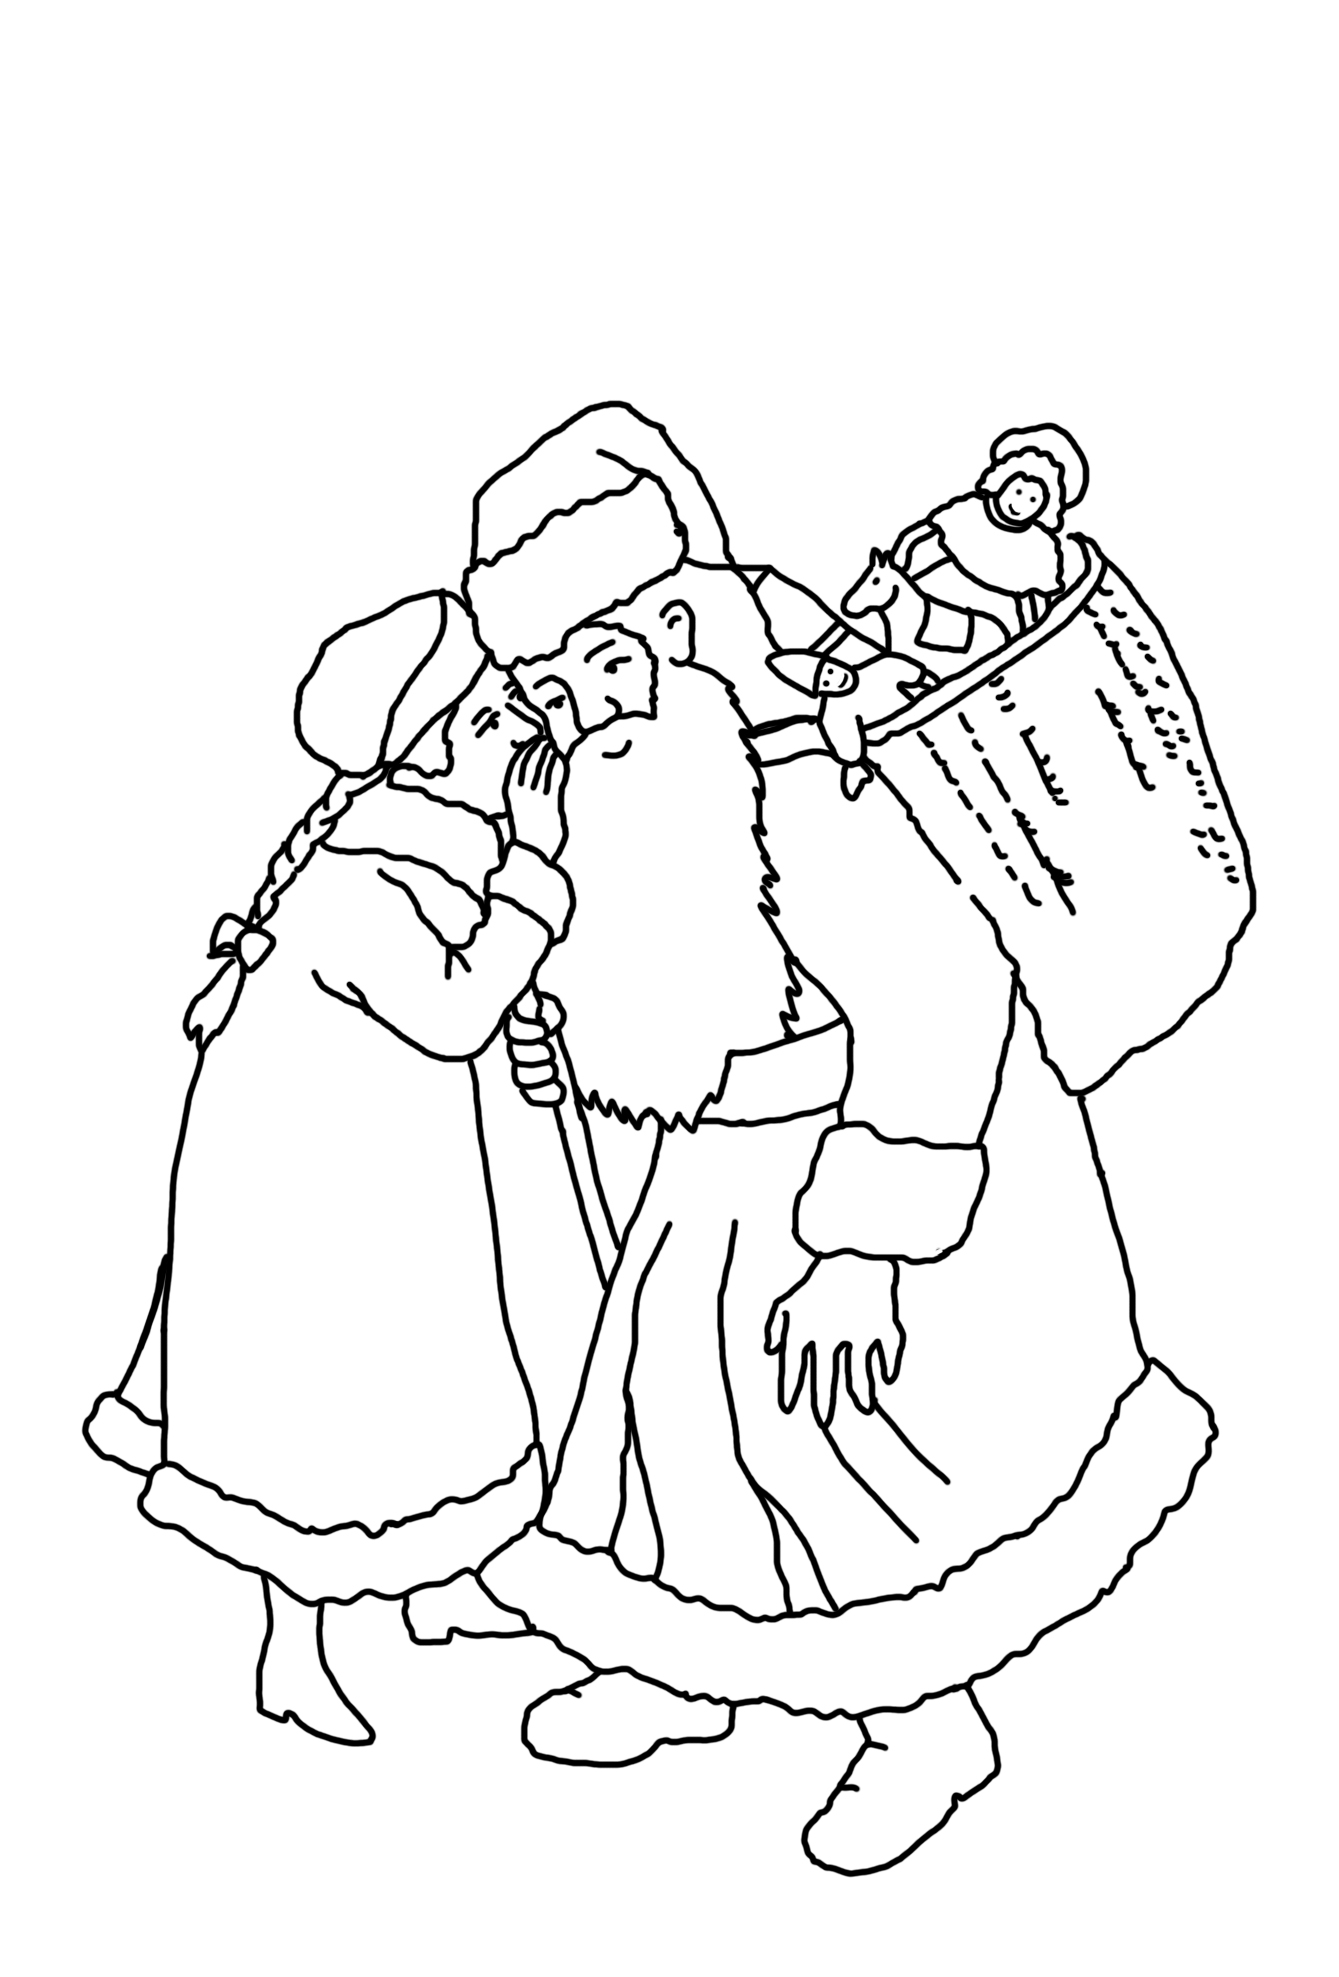 1339x1977 Christmas Coloring Pages